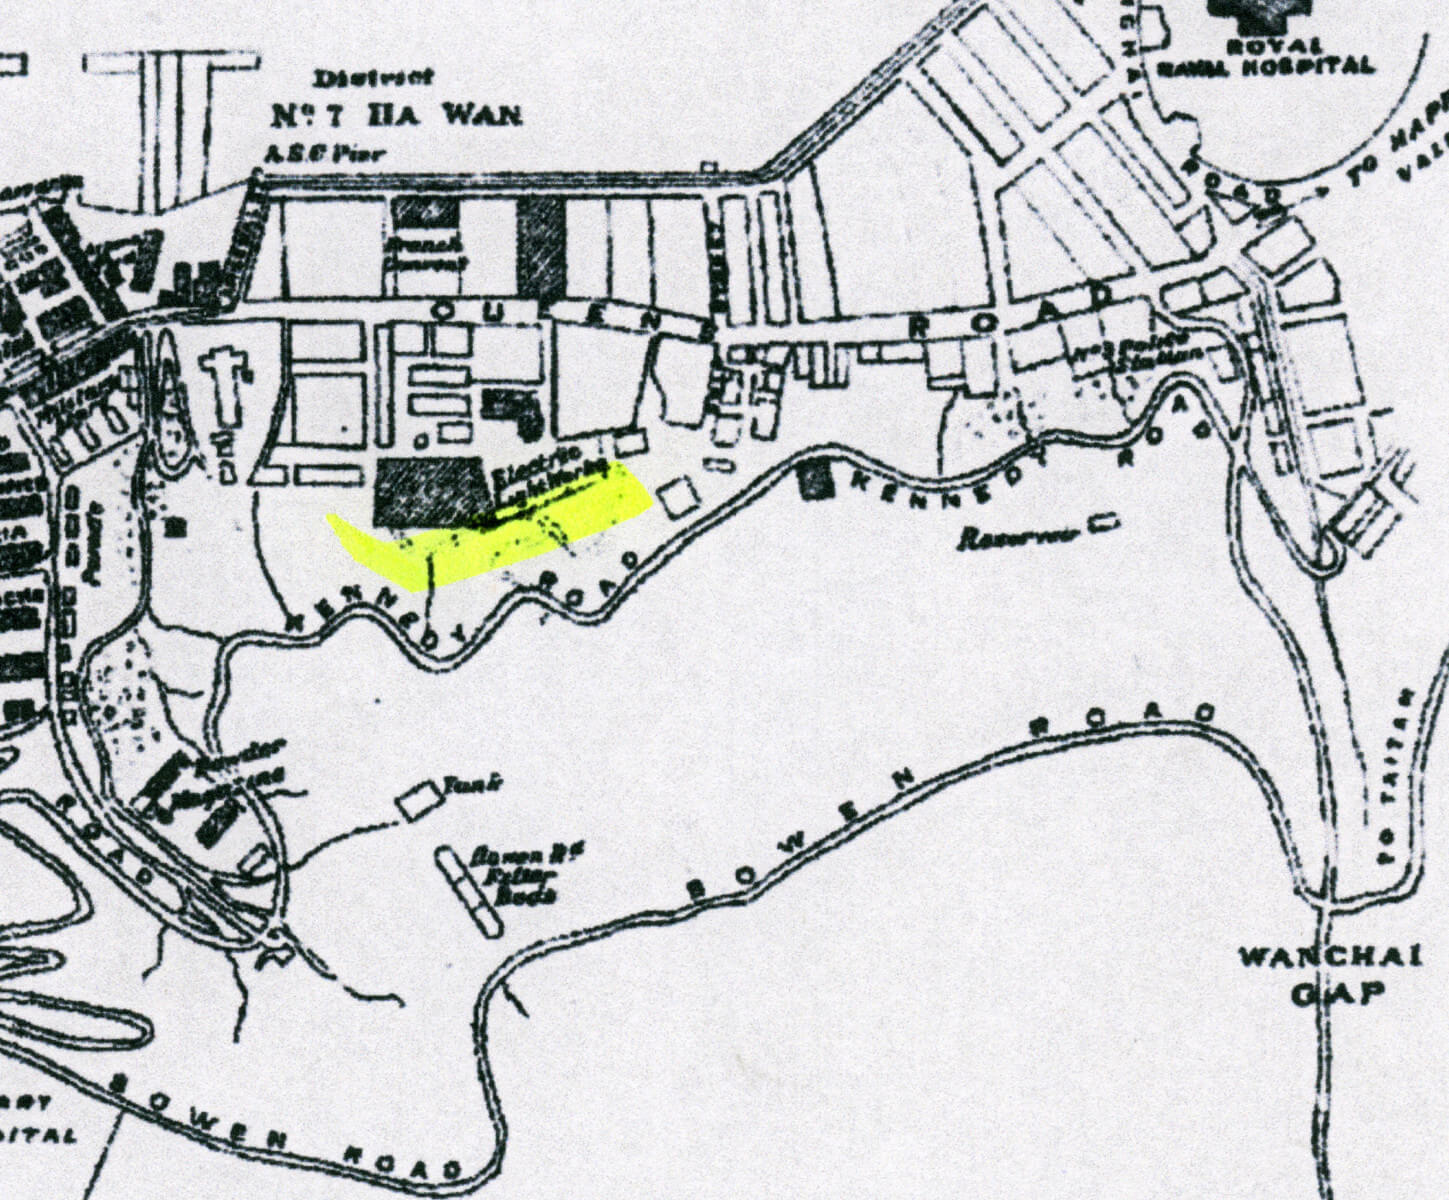 Hong Kong Electric Wanchai Light_Works-1909-highlighted